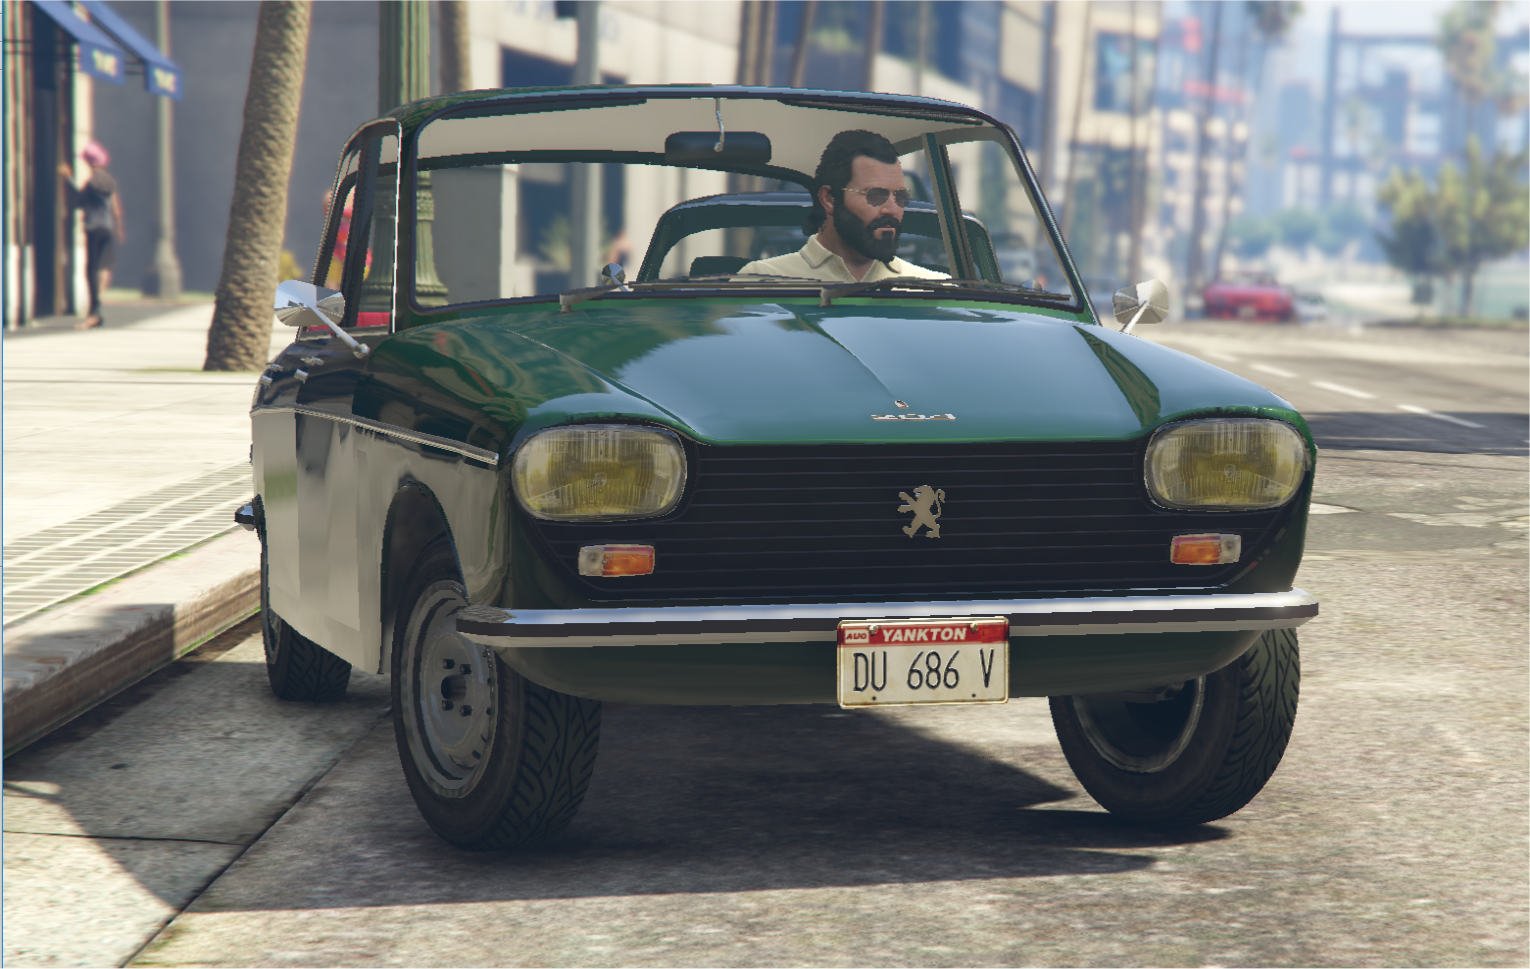 Fiat Of Glendale >> PEUGEOT 204 [Add-On] + [Replace] for Glendale, with tuning parts - GTA5-Mods.com